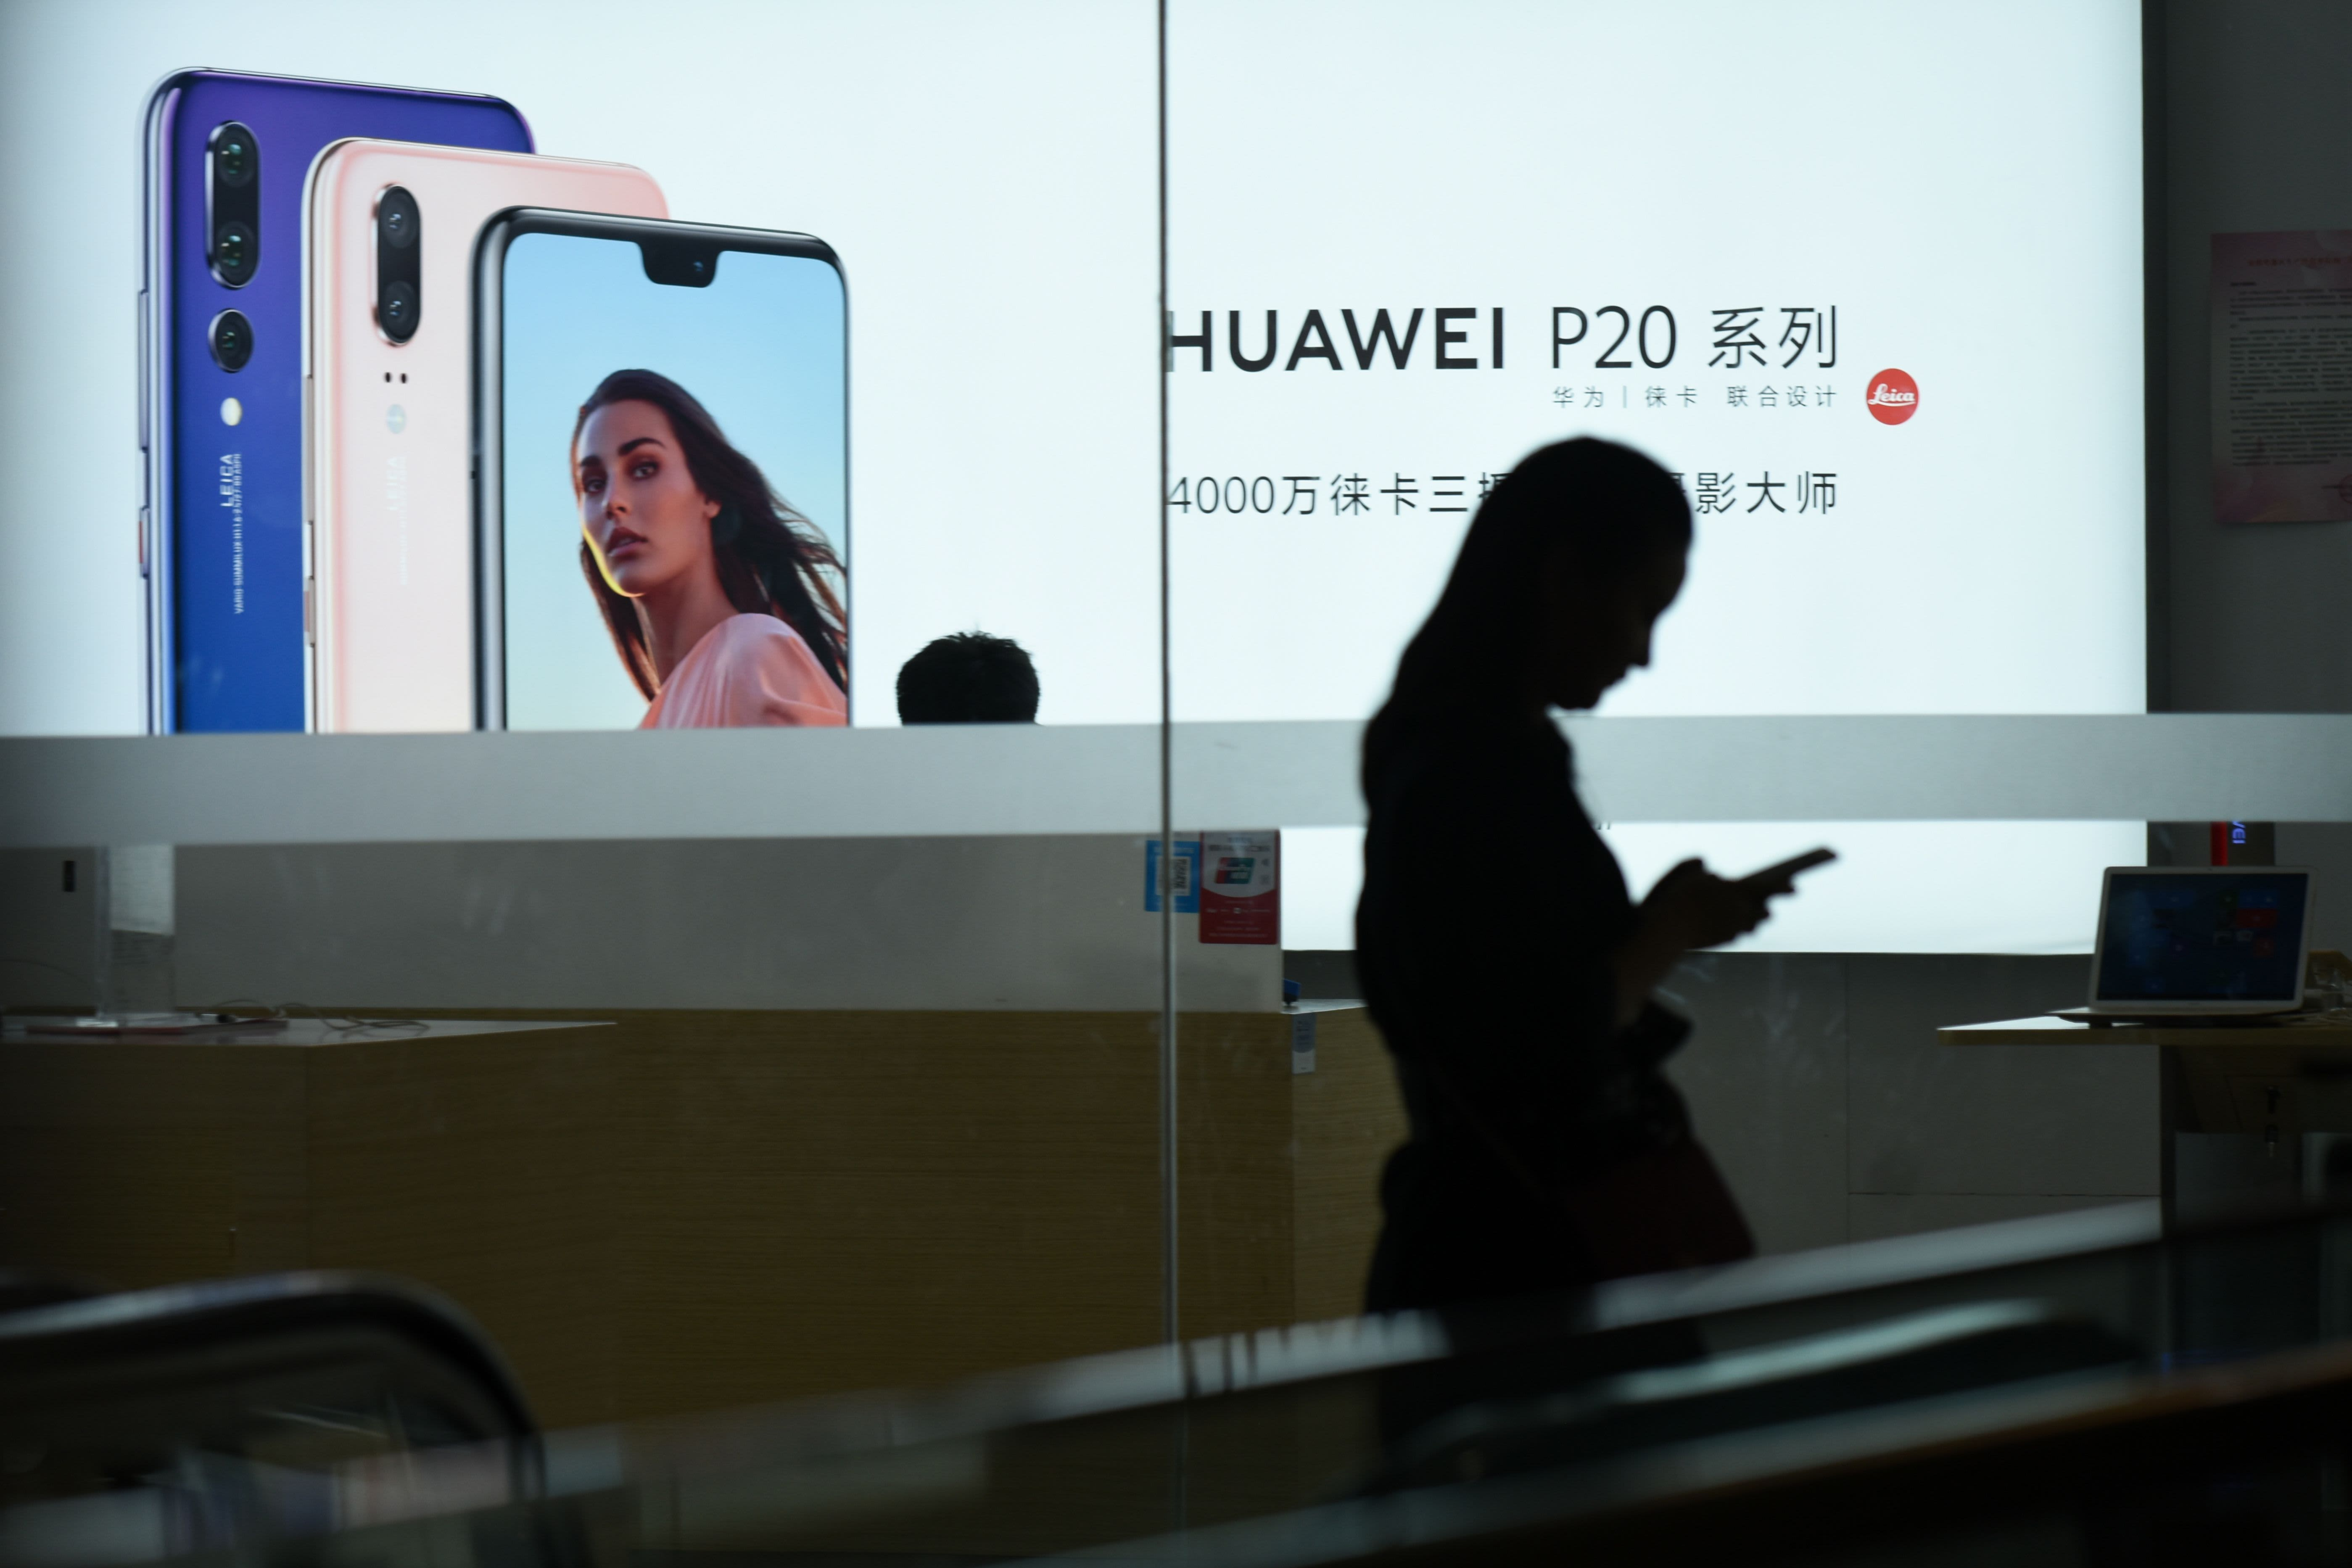 Huawei takes market share from Apple iPhone, Samsung Galaxy: Gartner